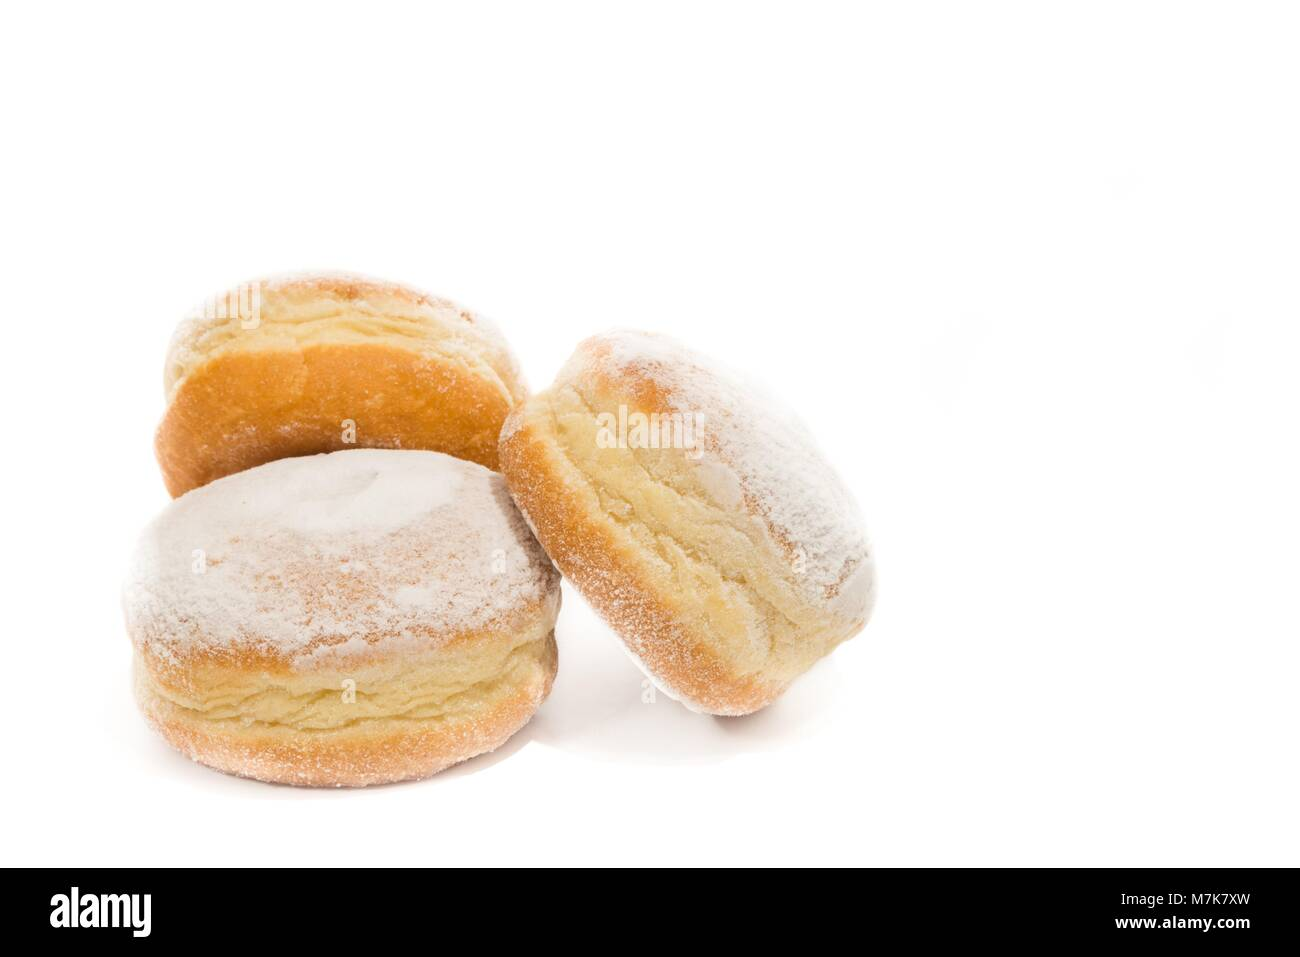 Carnival Donut with carnival decoration on a slate - Stock Image